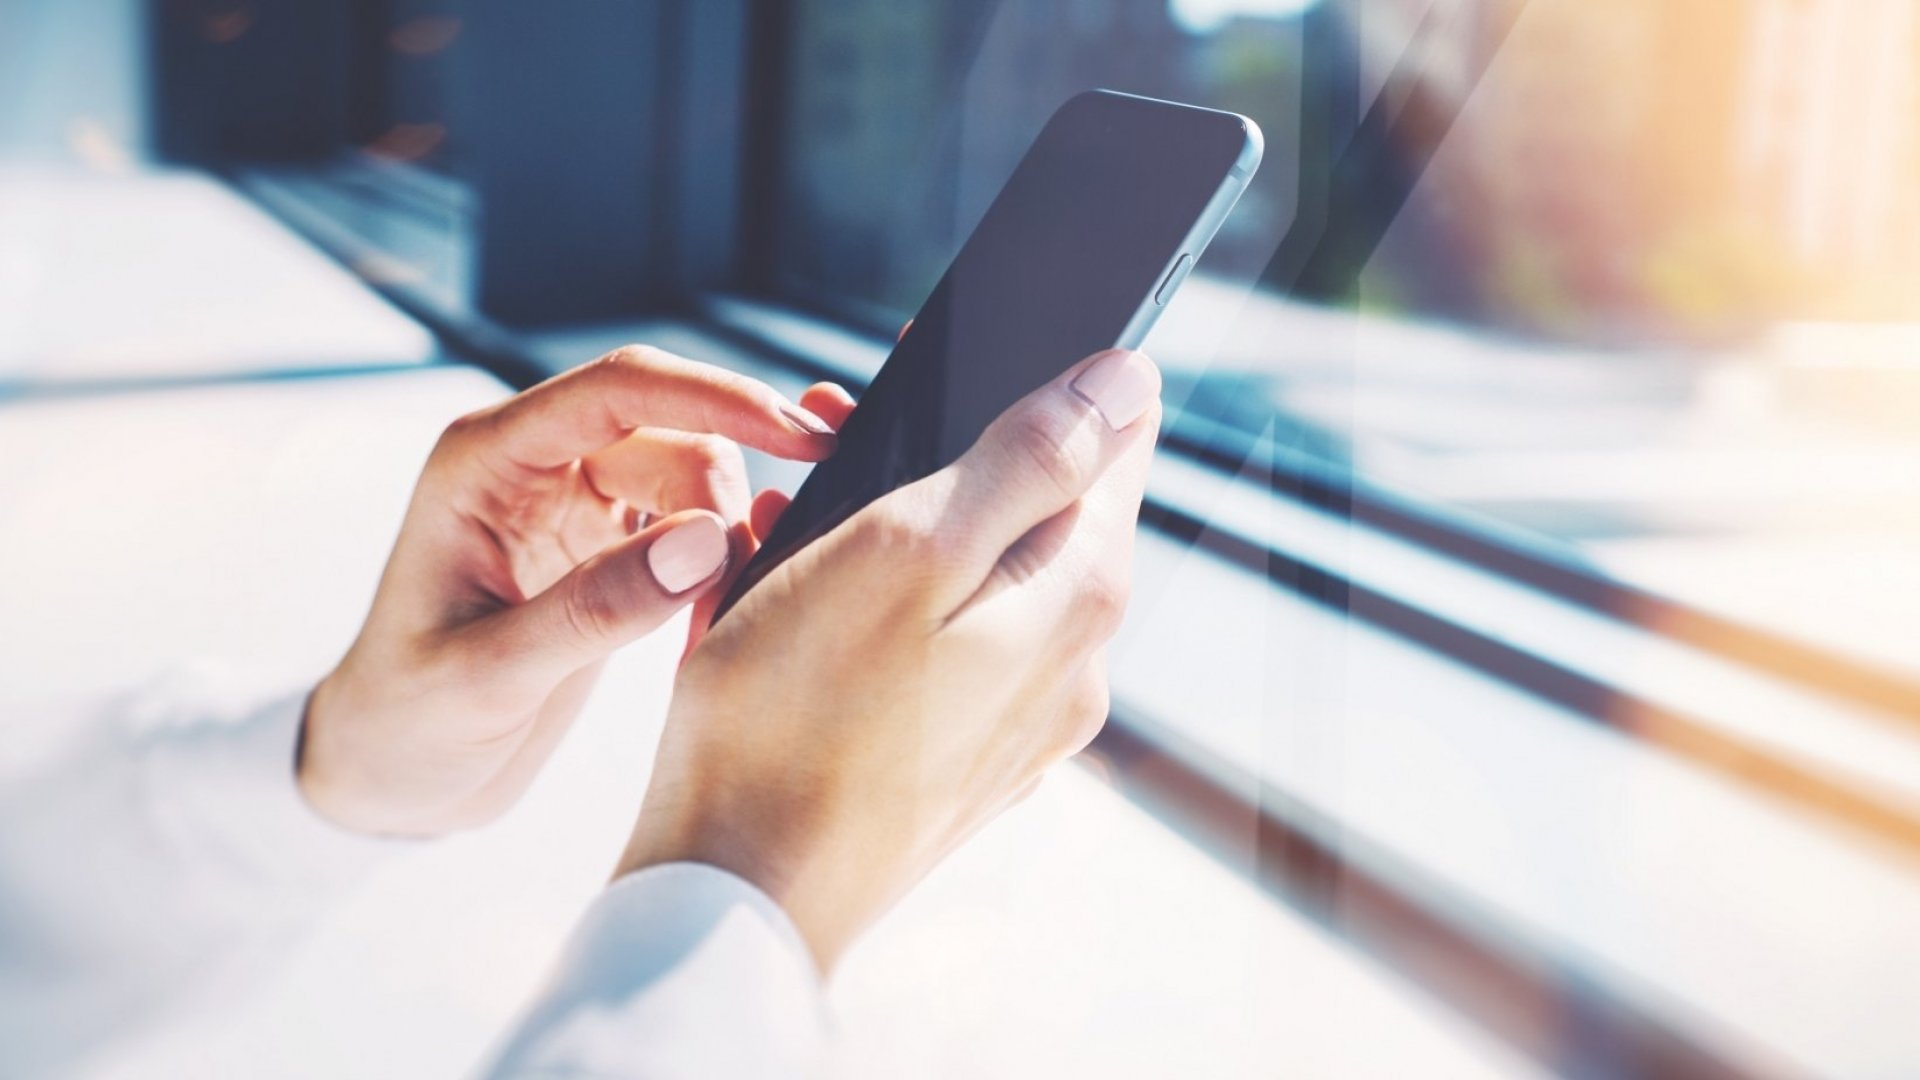 Top 6 mobile apps to streamline your life